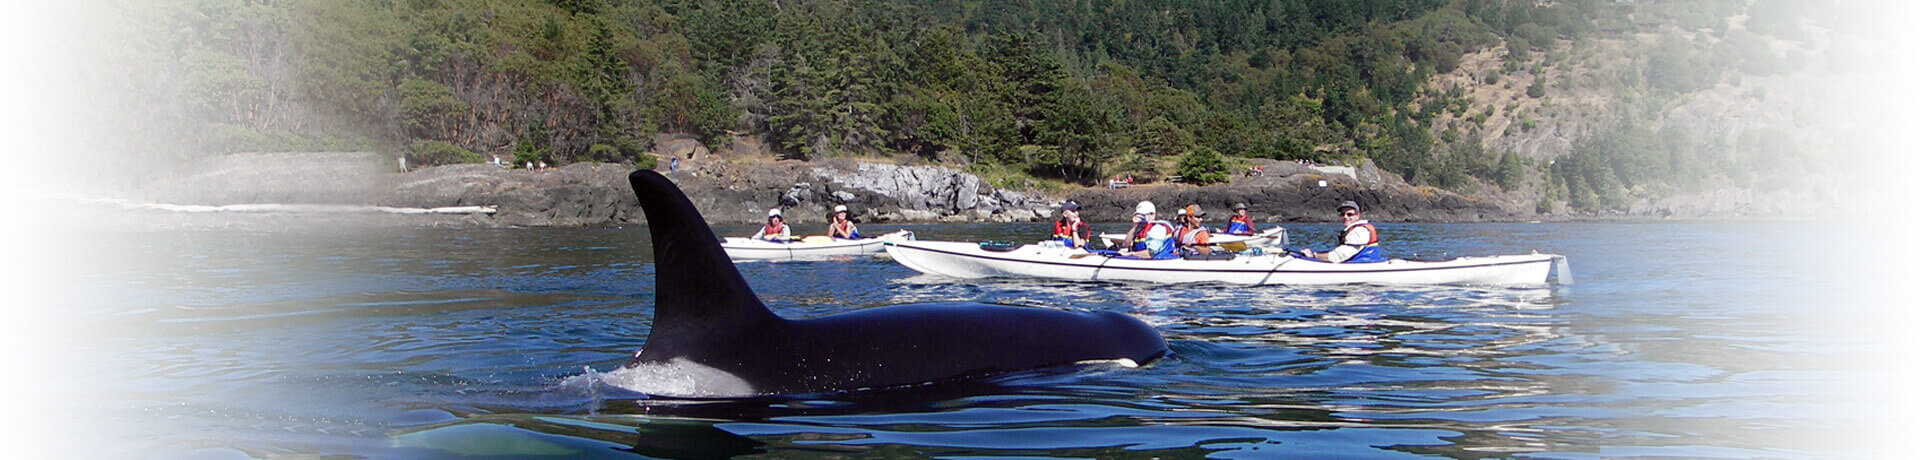 Kayaking-Orca-Whales-Lime-Kiln-1920x460-4